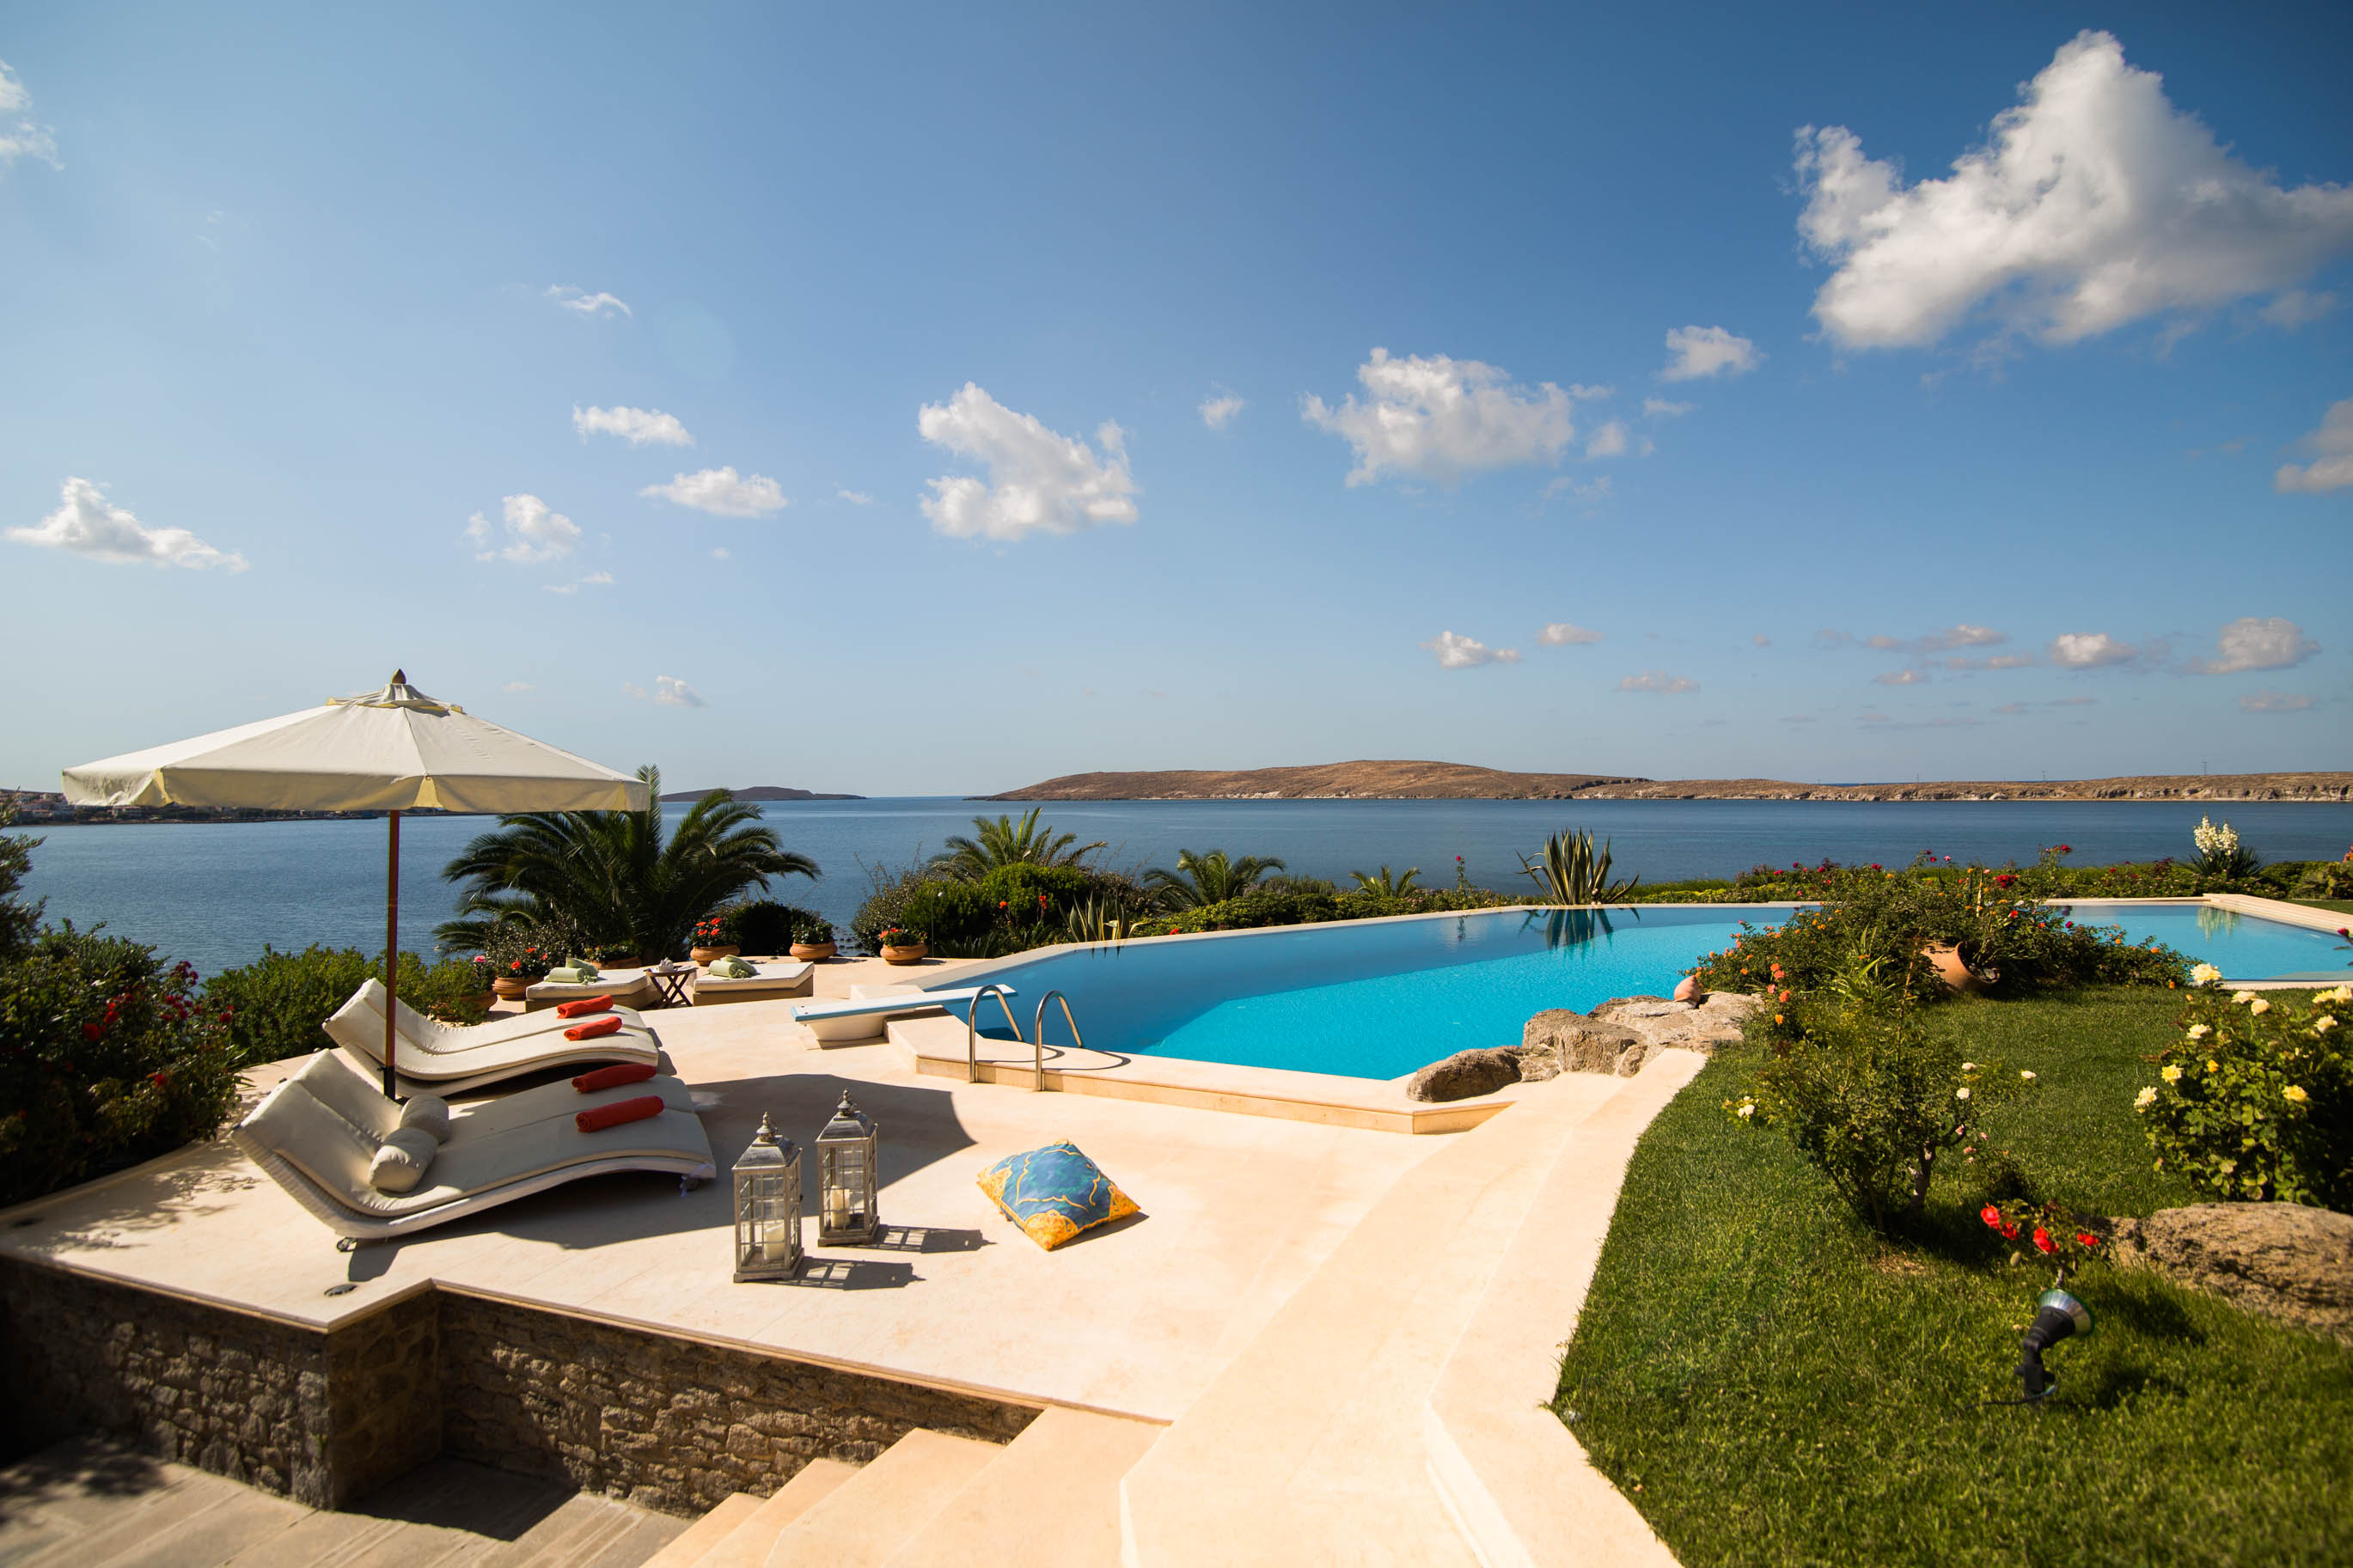 luxury villa rental, Greece, EGELES 901